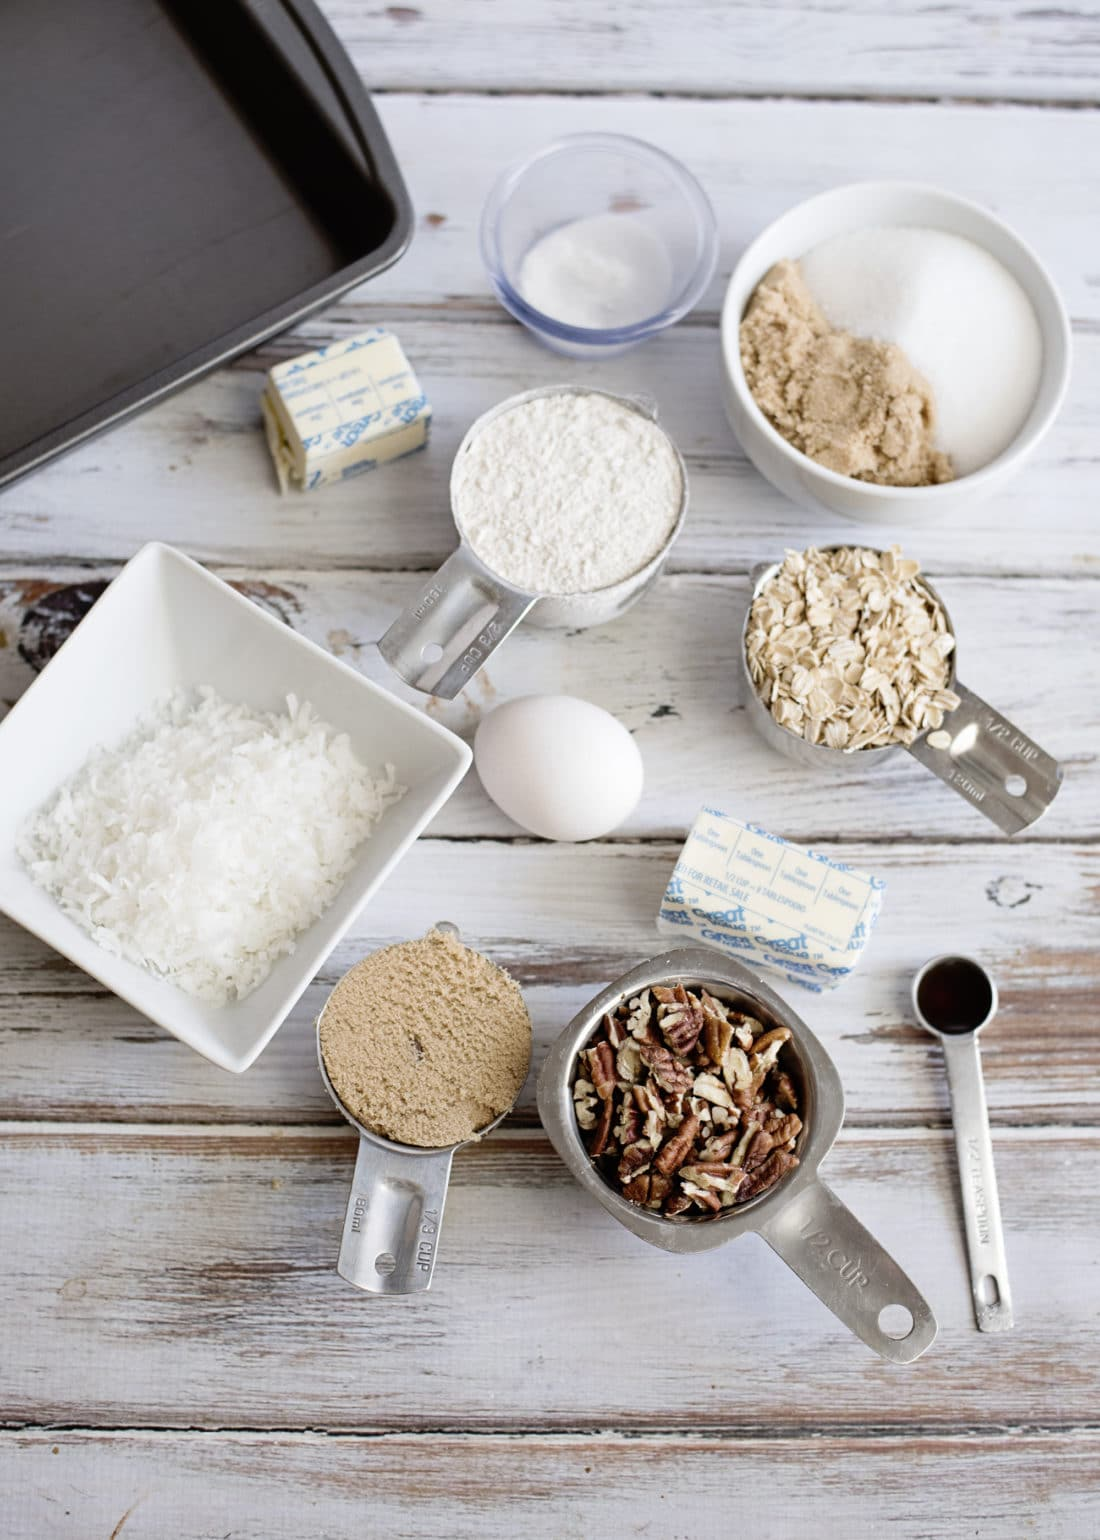 Everything you need to make an Oatmeal Cake with Coconut Pecan Frosting Full Ingredients. Fill your home with the smell of an easy to make Grandma's recipe Oatmeal Cake with Coconut Pecan Frosting.